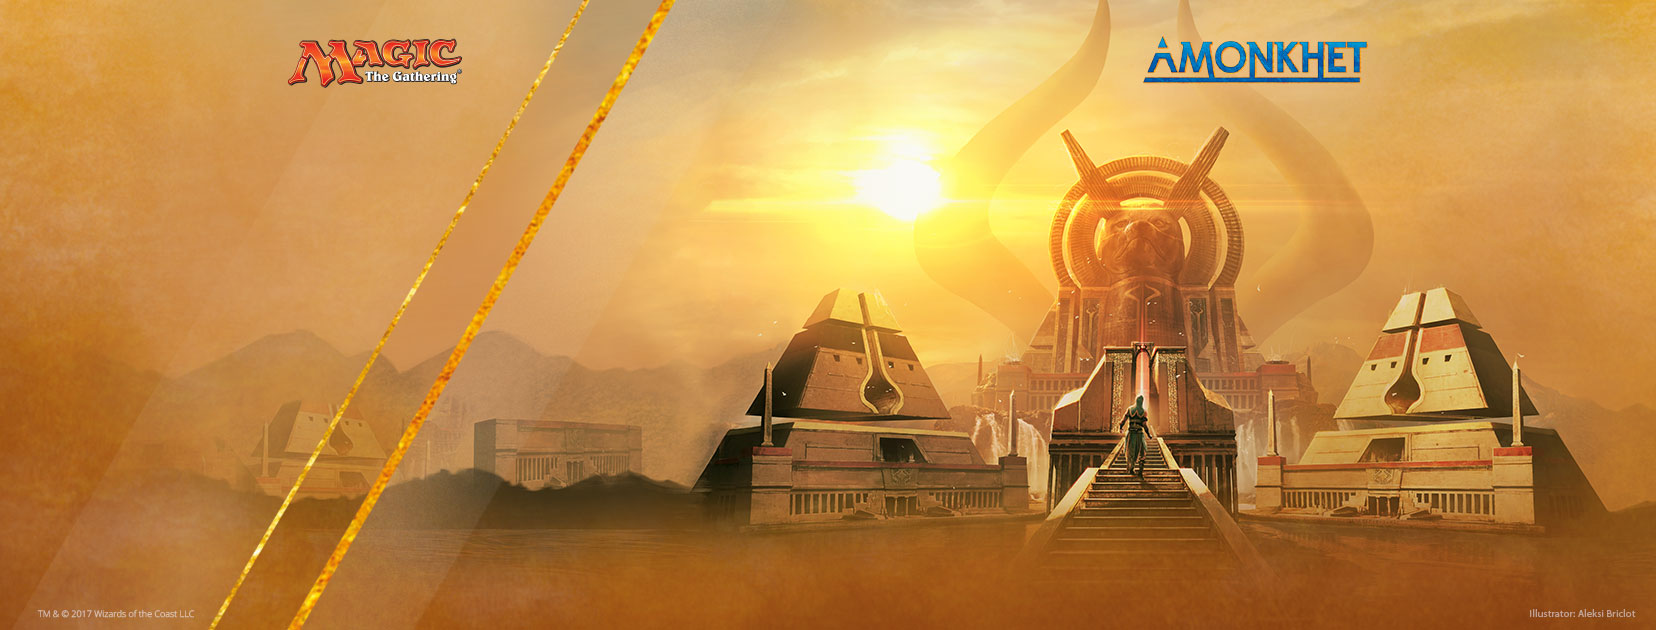 Amonkhet Non-Basic Lands